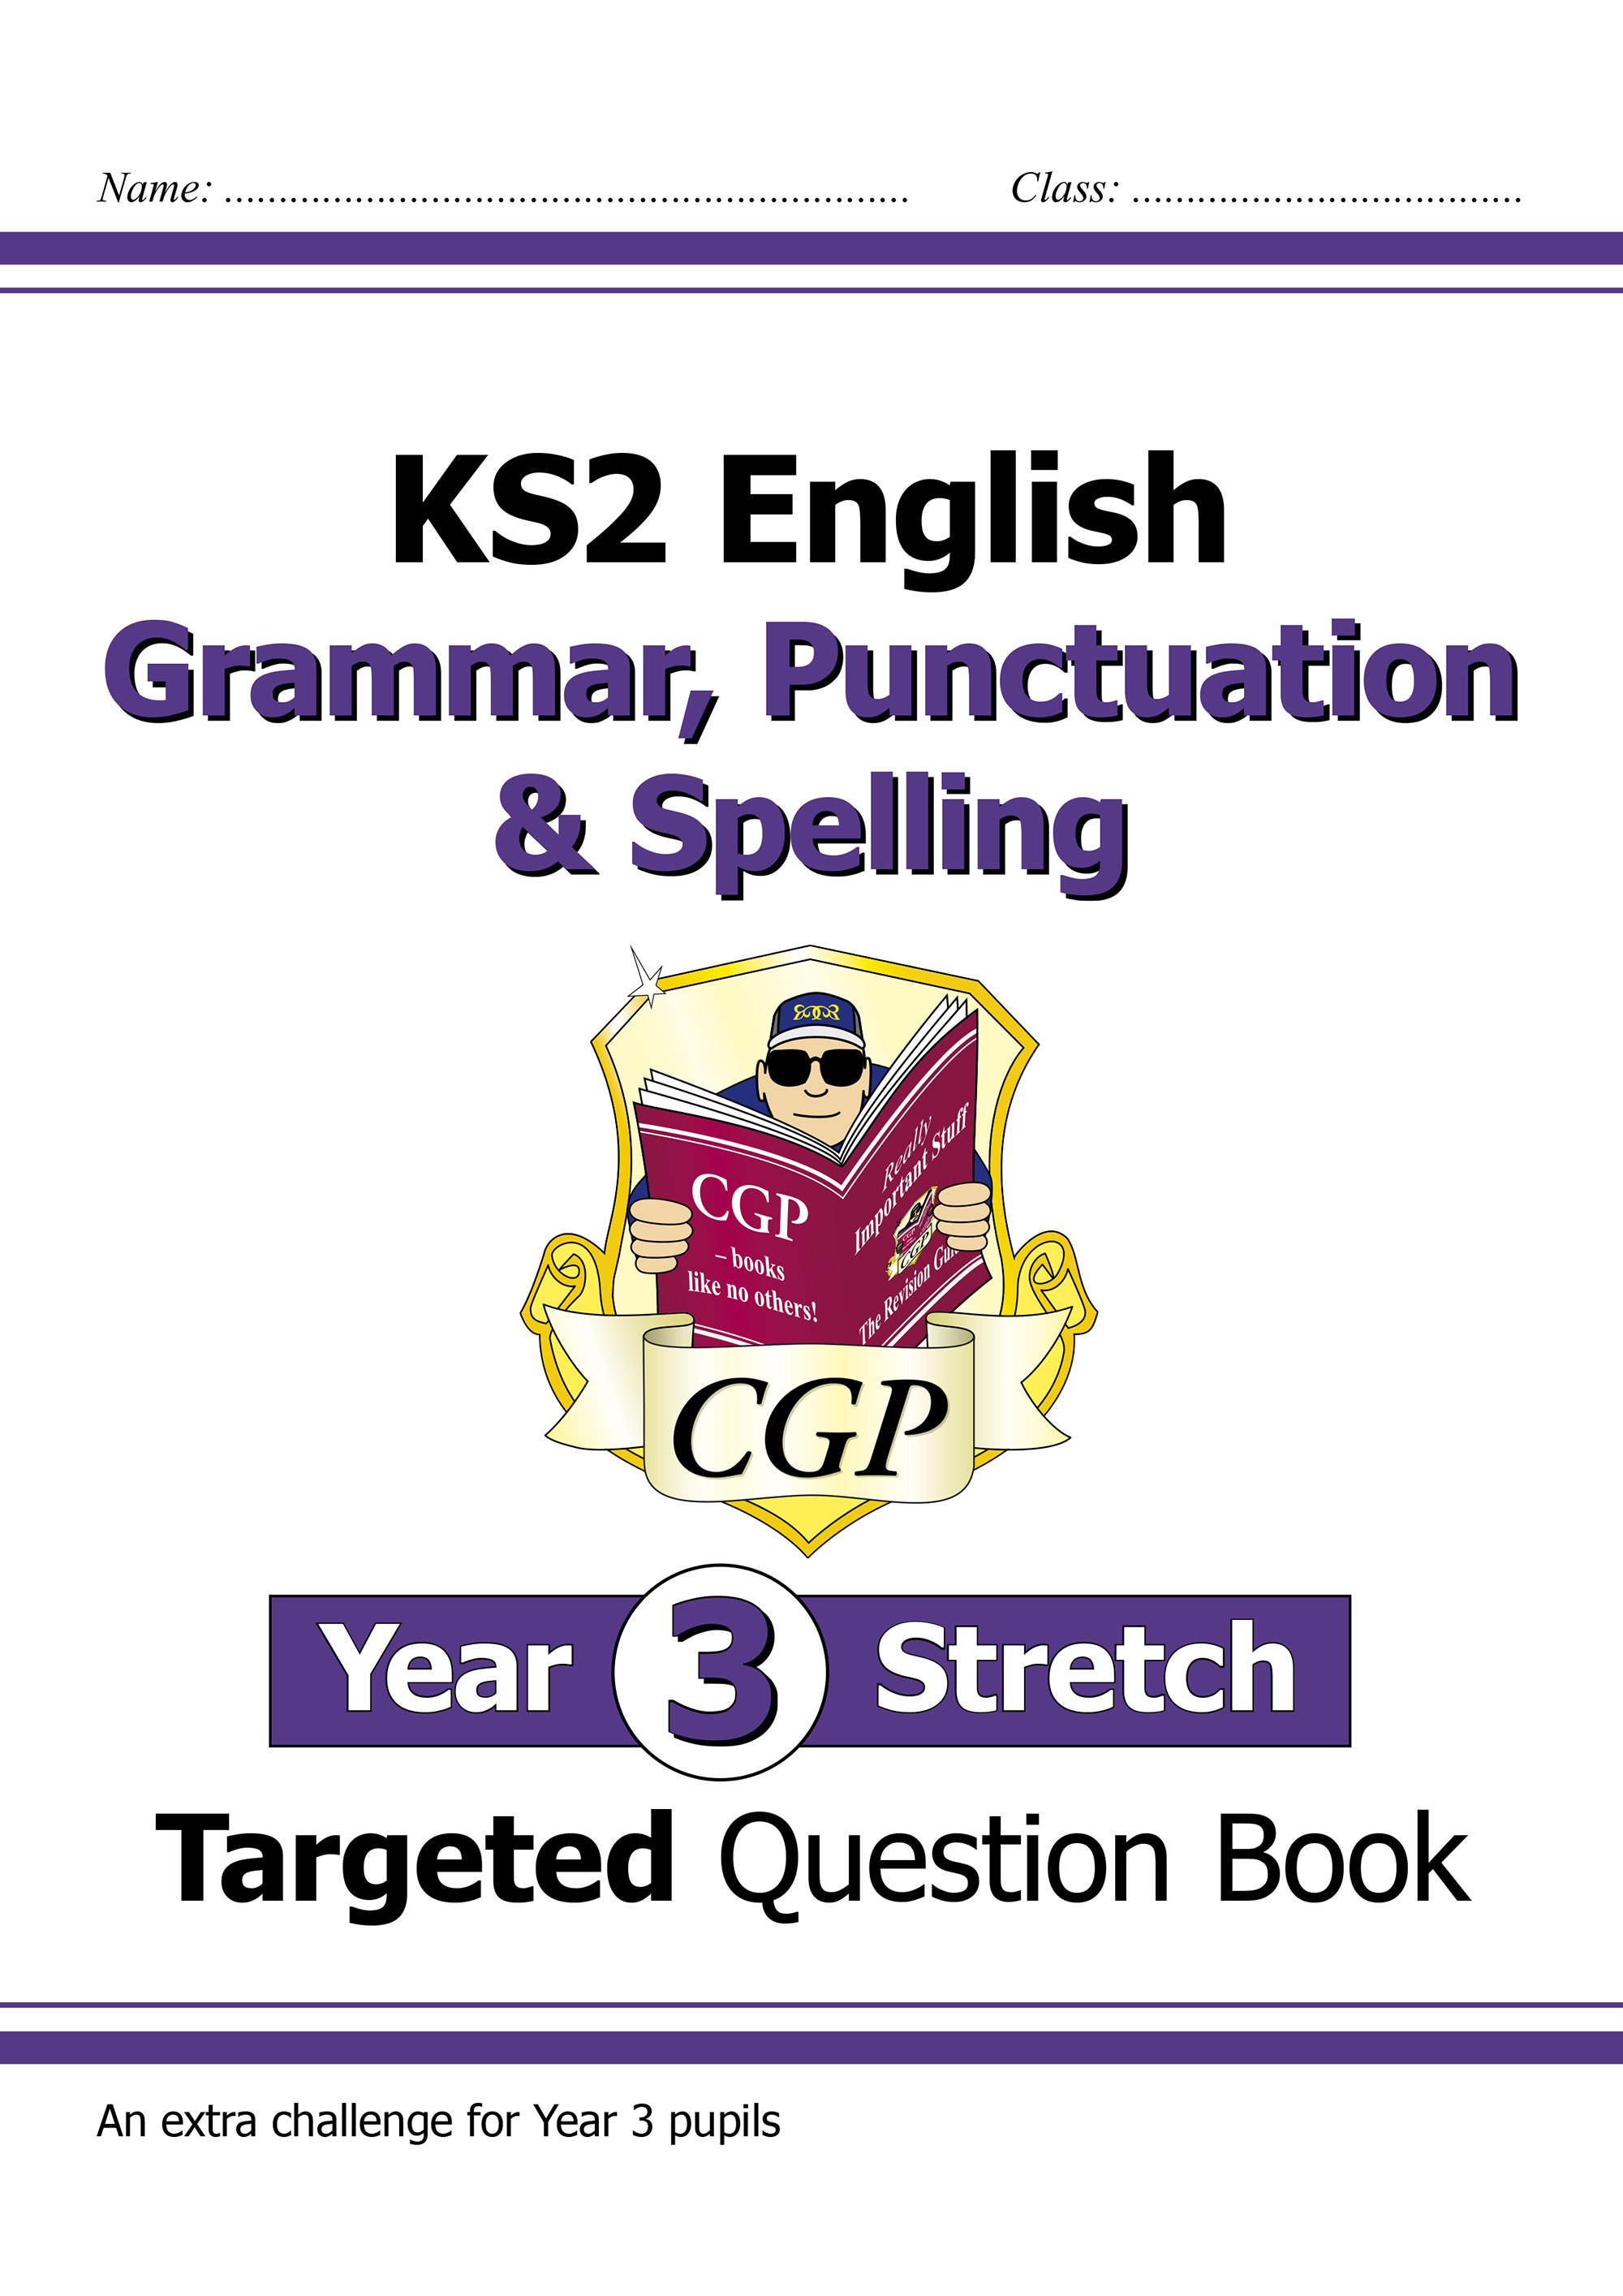 EG3HW21D - KS2 English Targeted Question Book: Challenging Grammar, Punctuation & Spelling - Year 3